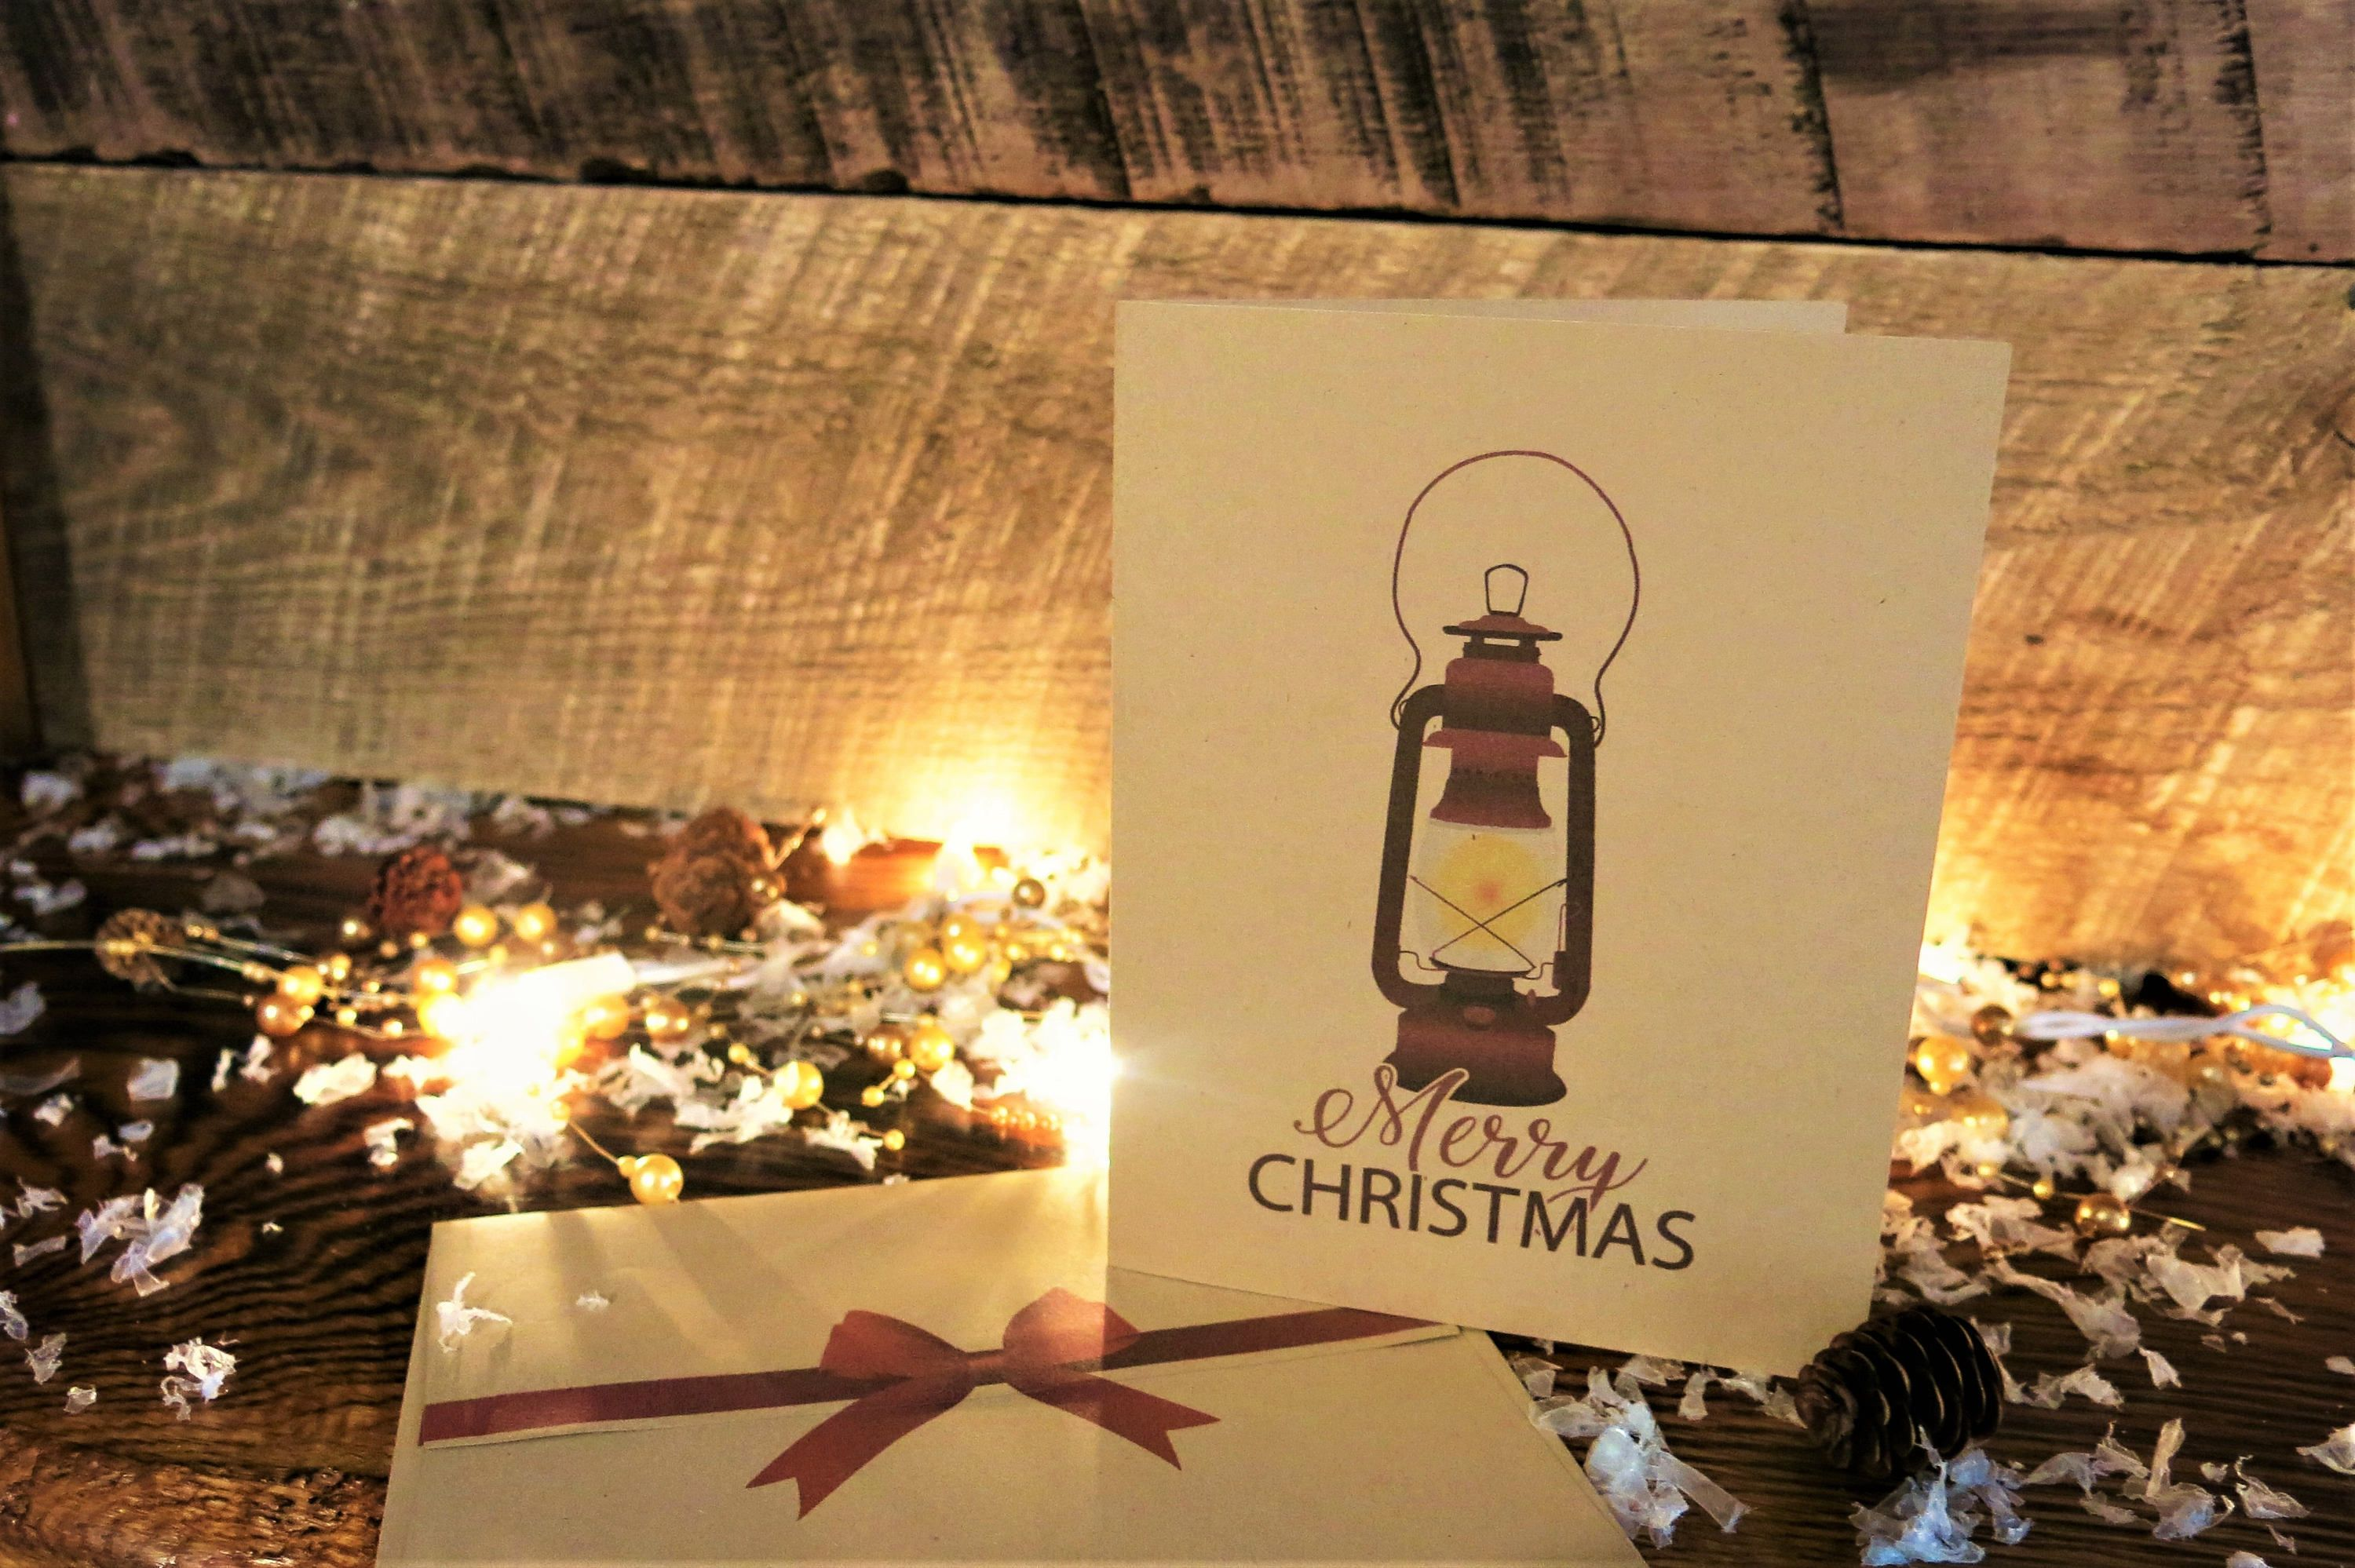 Christmas cards greeting cards old fashioned christmas christmas cards greeting cards old fashioned christmas lantern vintage christmas holiday kristyandbryce Image collections